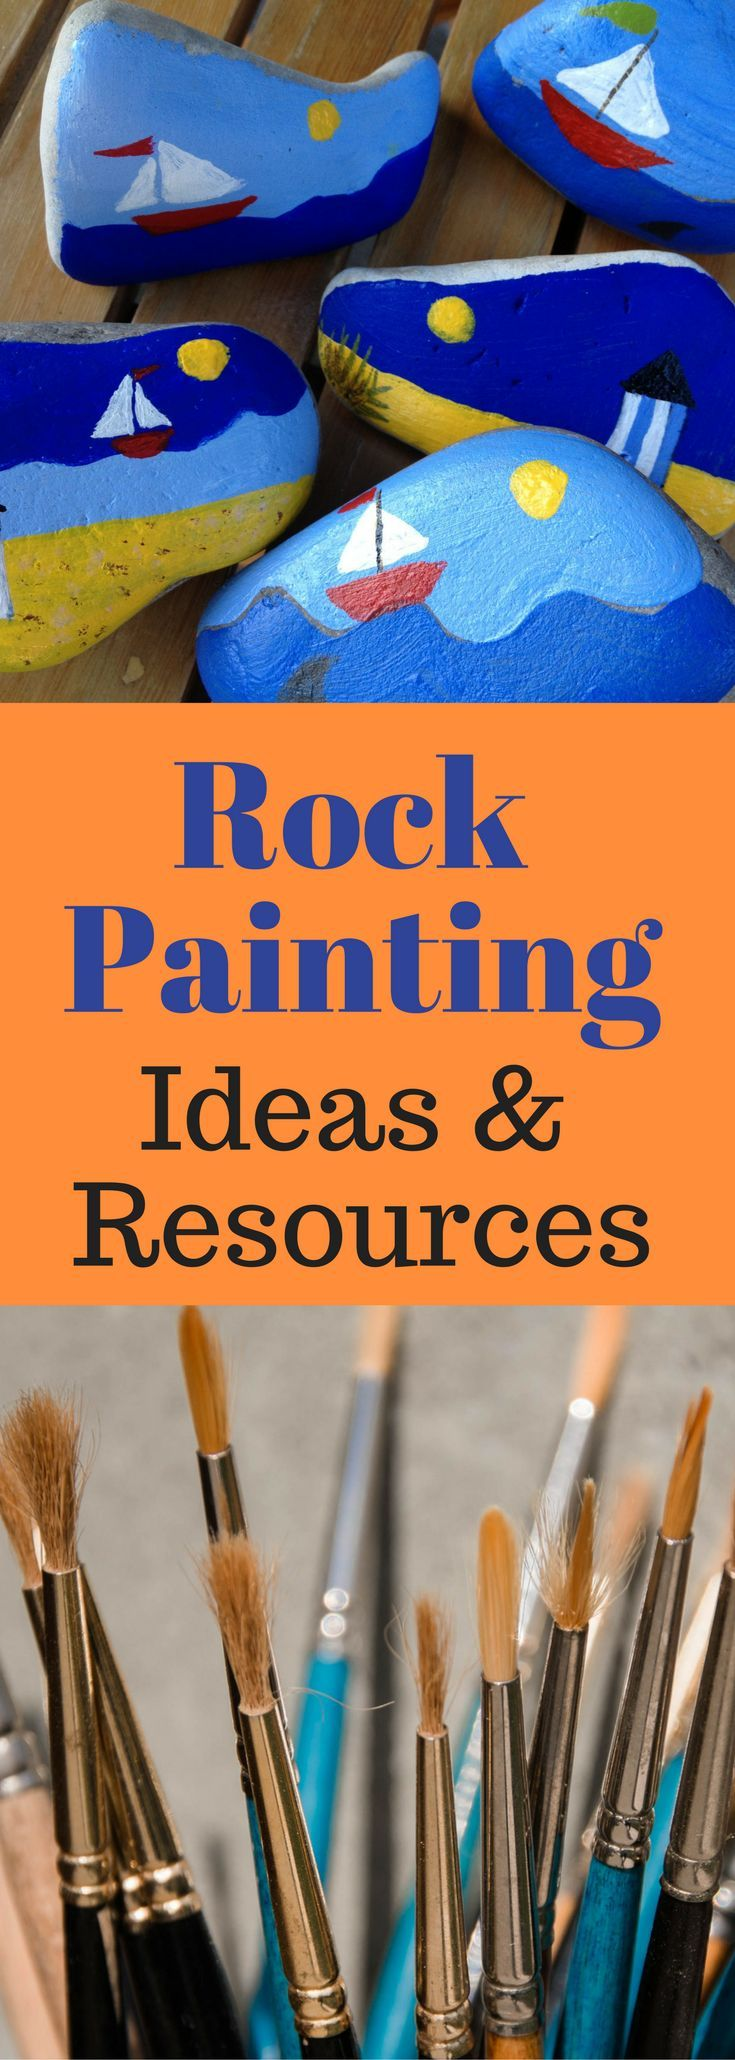 Rock Painting Ideas & Resources - LOTS of information about painted rocks